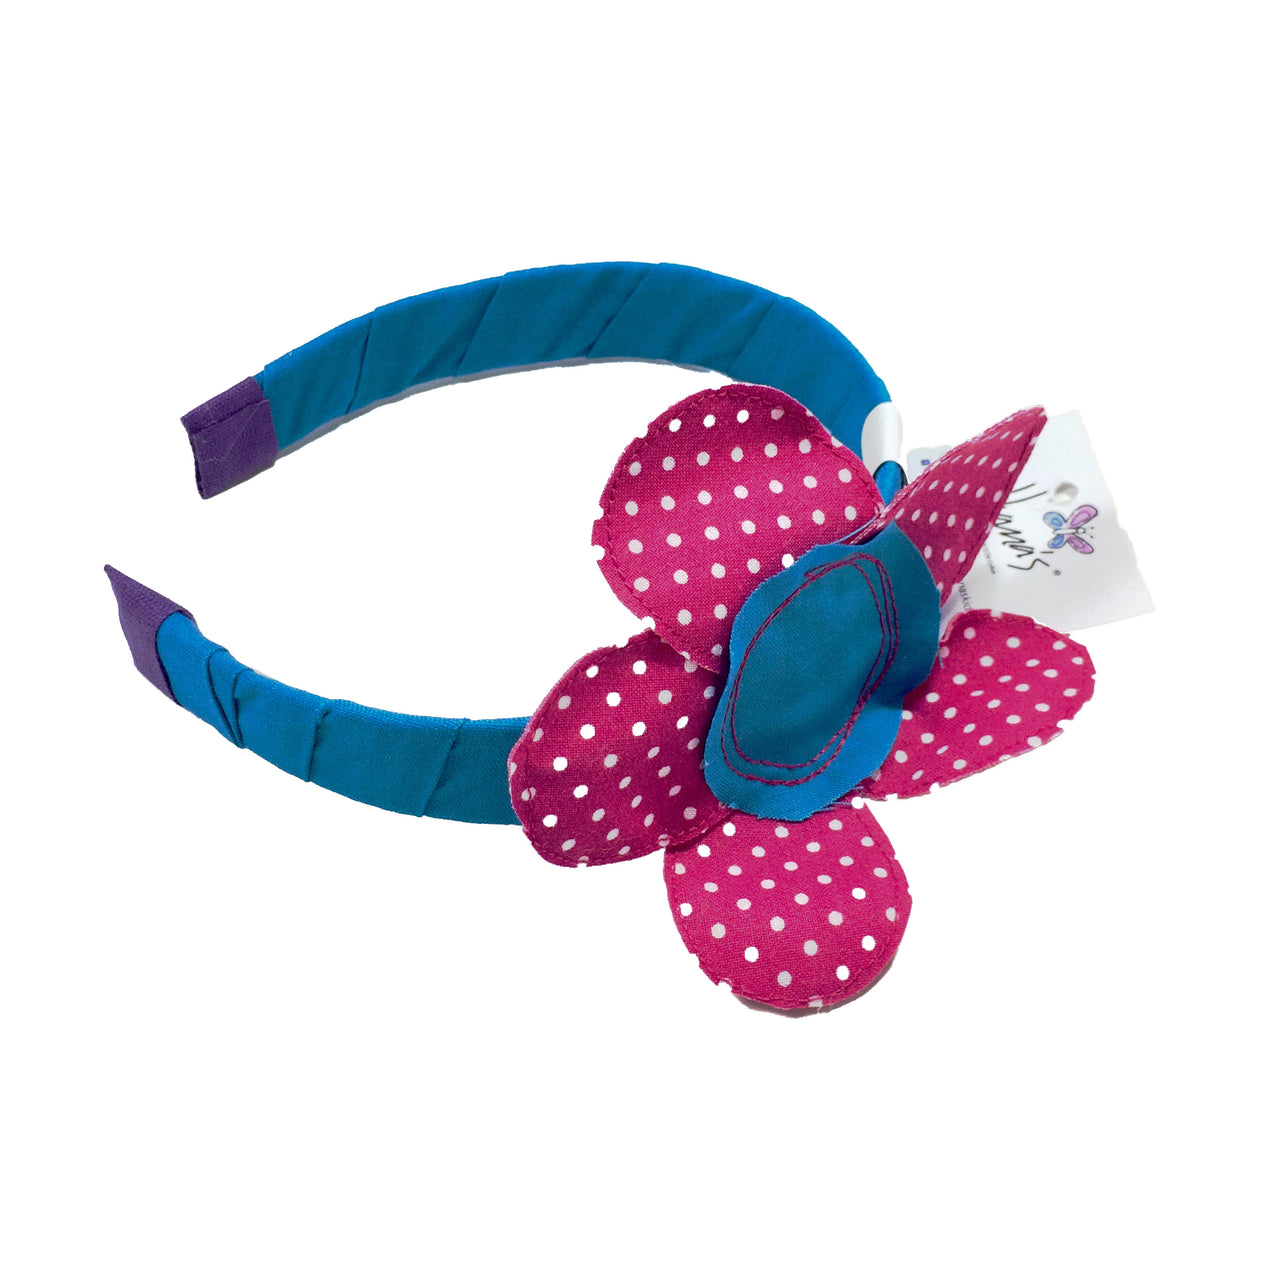 This Turquoise/Fuchsia Flower Headband is finished with 100% cotton fabric, decorated with a hand sewed little flower. This headband is perfect for girls of all ages and it is a lovely piece to have!